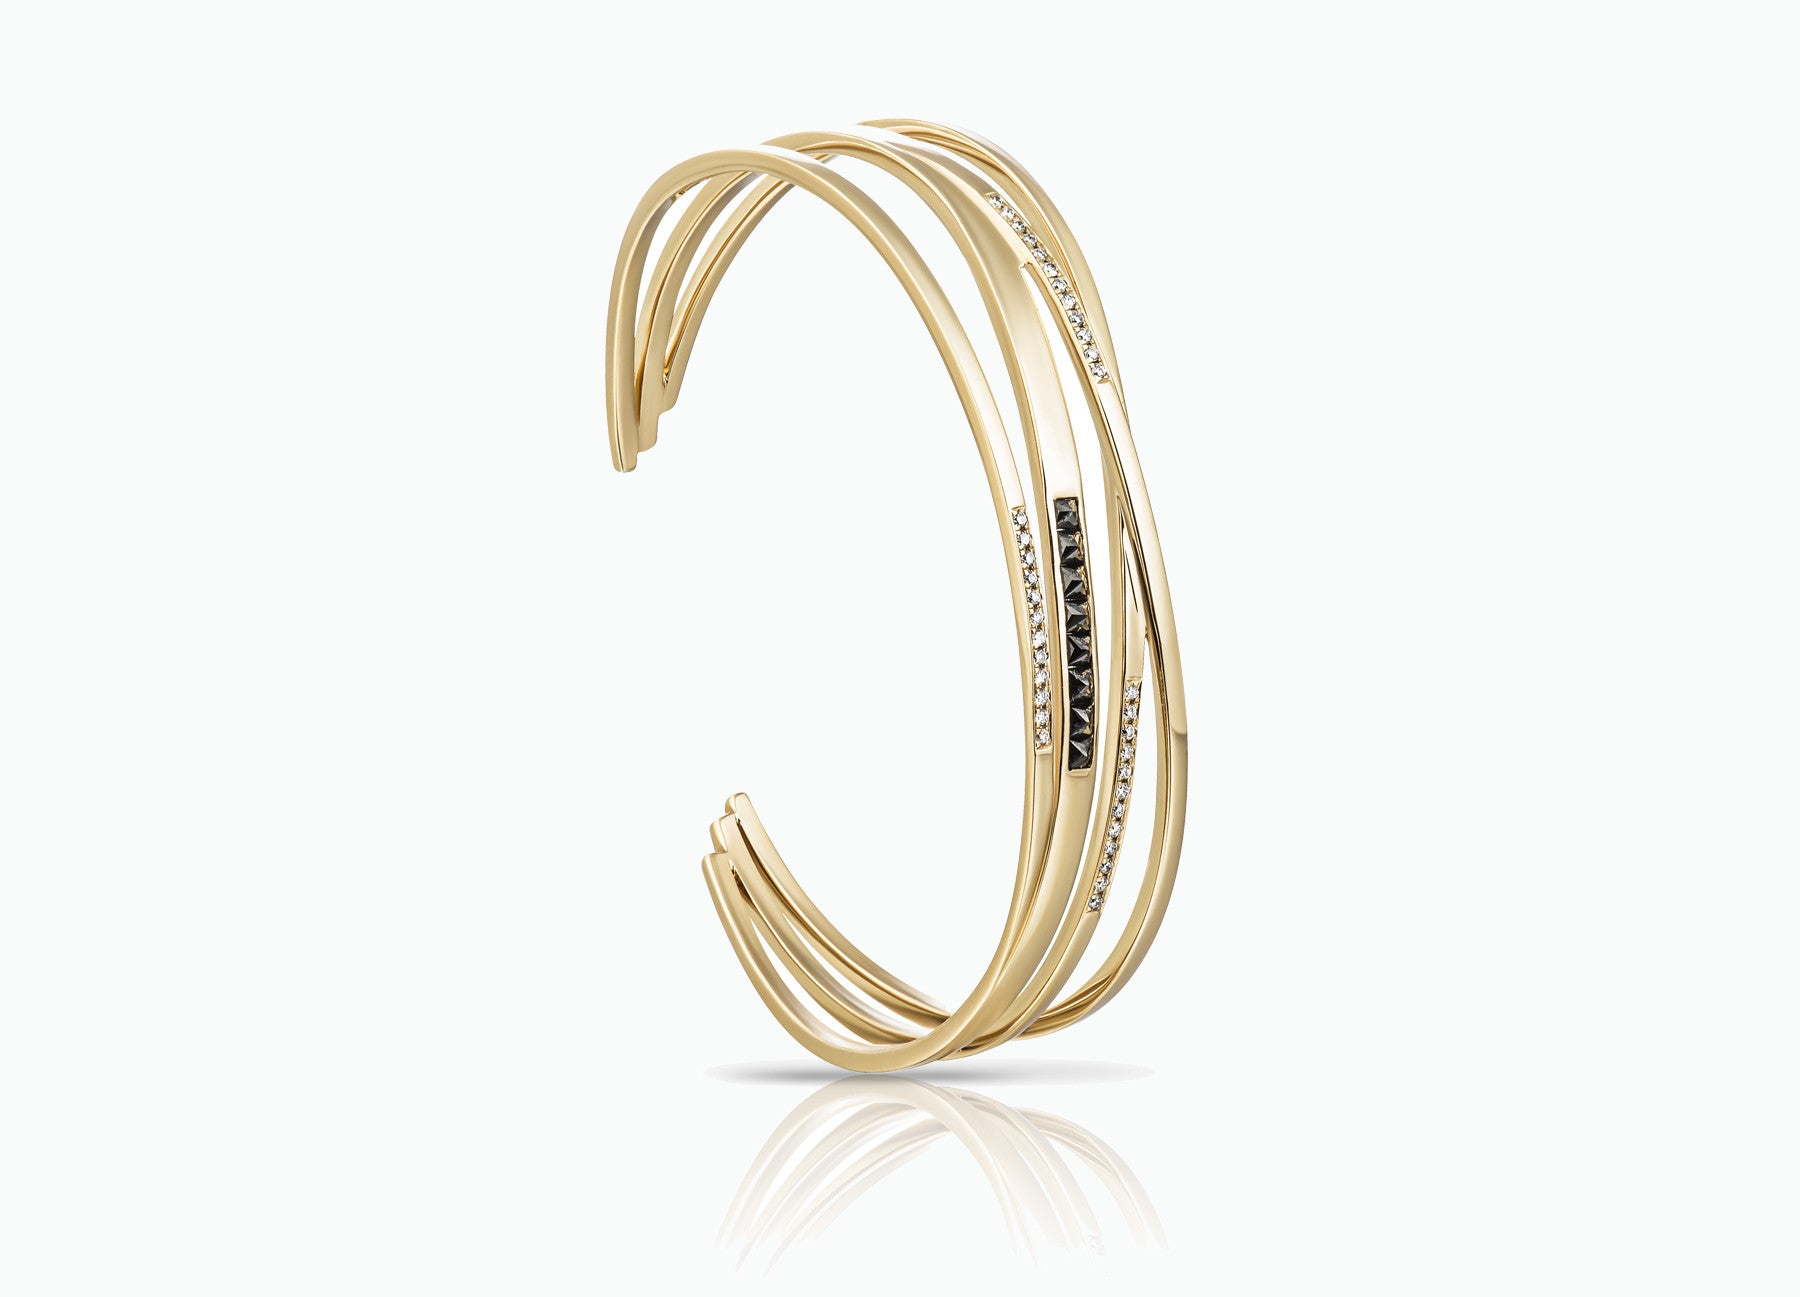 MINI STELLAR WRAP BANGLE